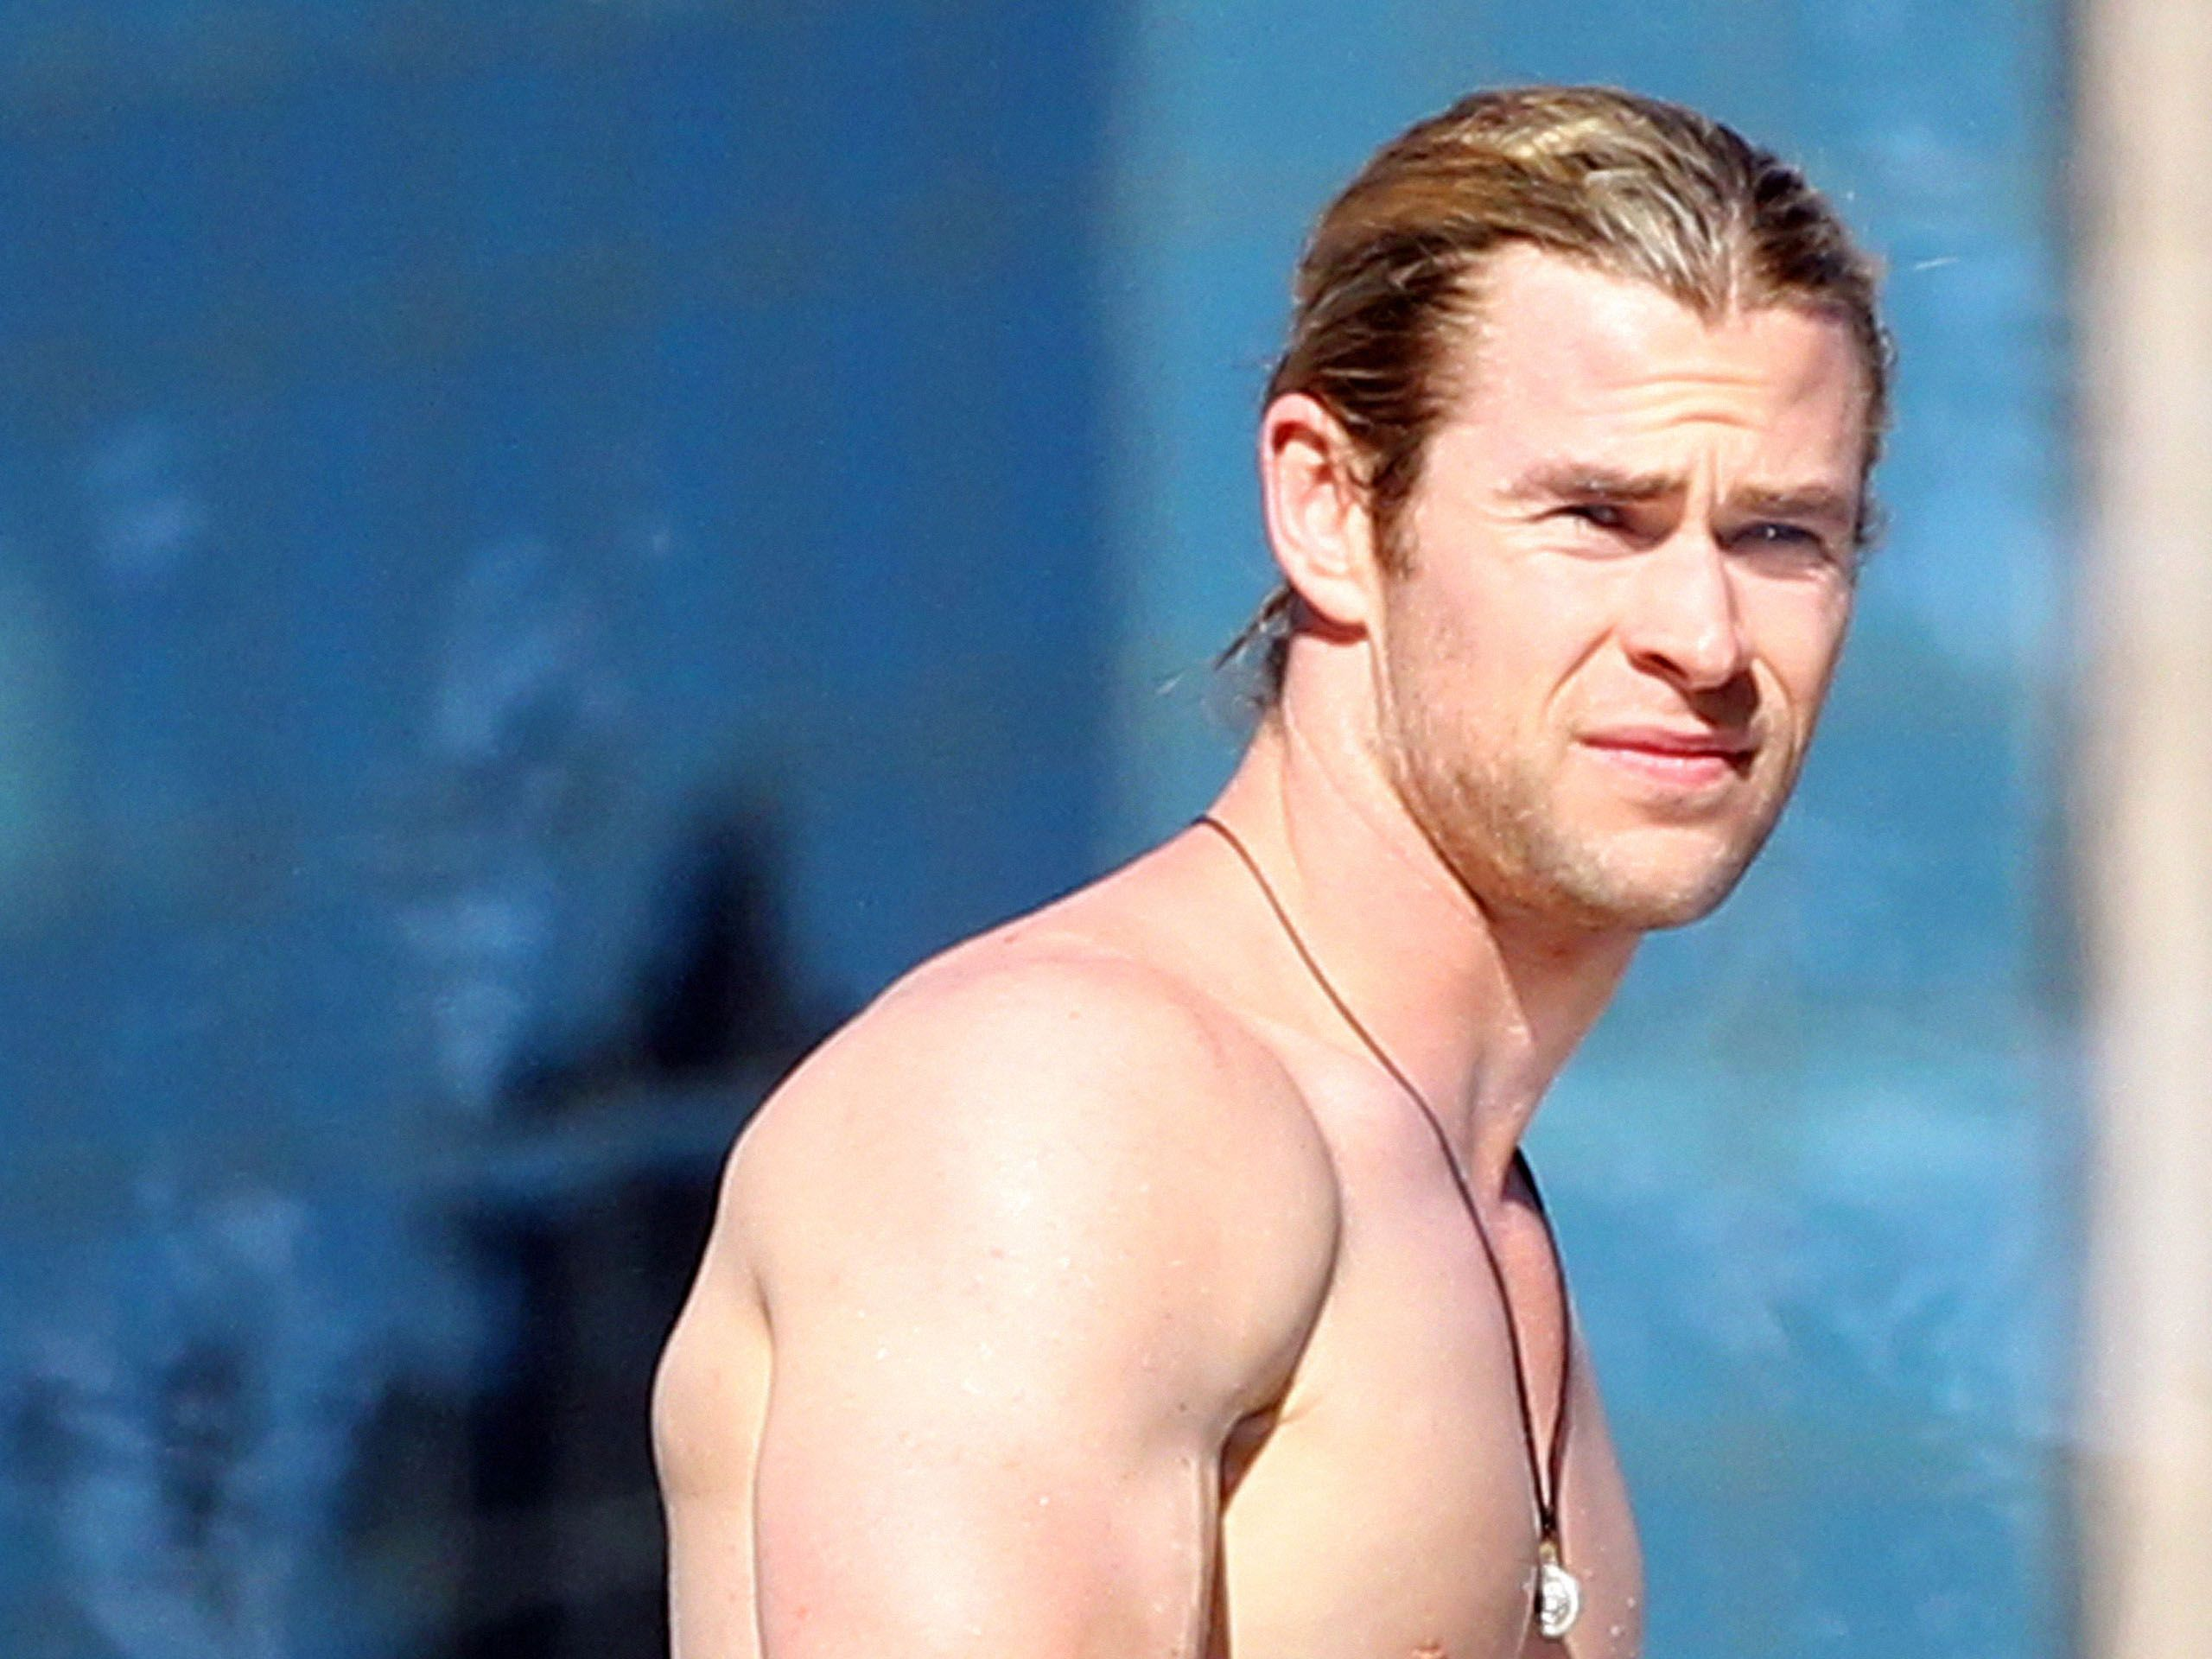 chris hemsworth heightchris hemsworth height, chris hemsworth wife, chris hemsworth vk, chris hemsworth 2017, chris hemsworth gif, chris hemsworth thor, chris hemsworth films, chris hemsworth tumblr, chris hemsworth movies, chris hemsworth filmleri, chris hemsworth long hair, chris hemsworth workout, chris hemsworth 2016, chris hemsworth фильмы, chris hemsworth kinopoisk, chris hemsworth training, chris hemsworth wiki, chris hemsworth star trek, chris hemsworth family, chris hemsworth snl